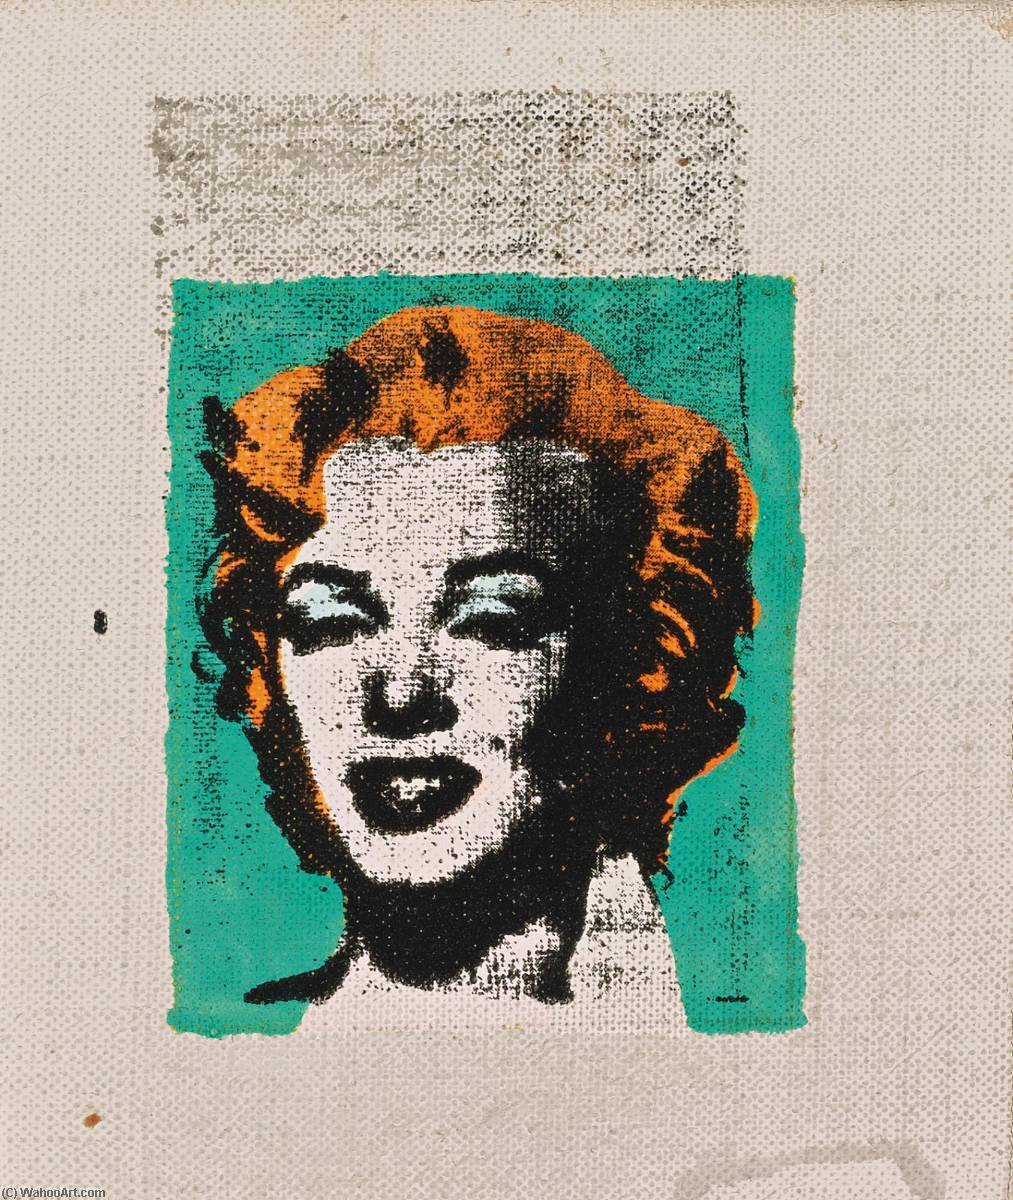 | Andy Warhol, Marilyn Monroe , 1962 by Richard Pettibone | BuyPopArt.com